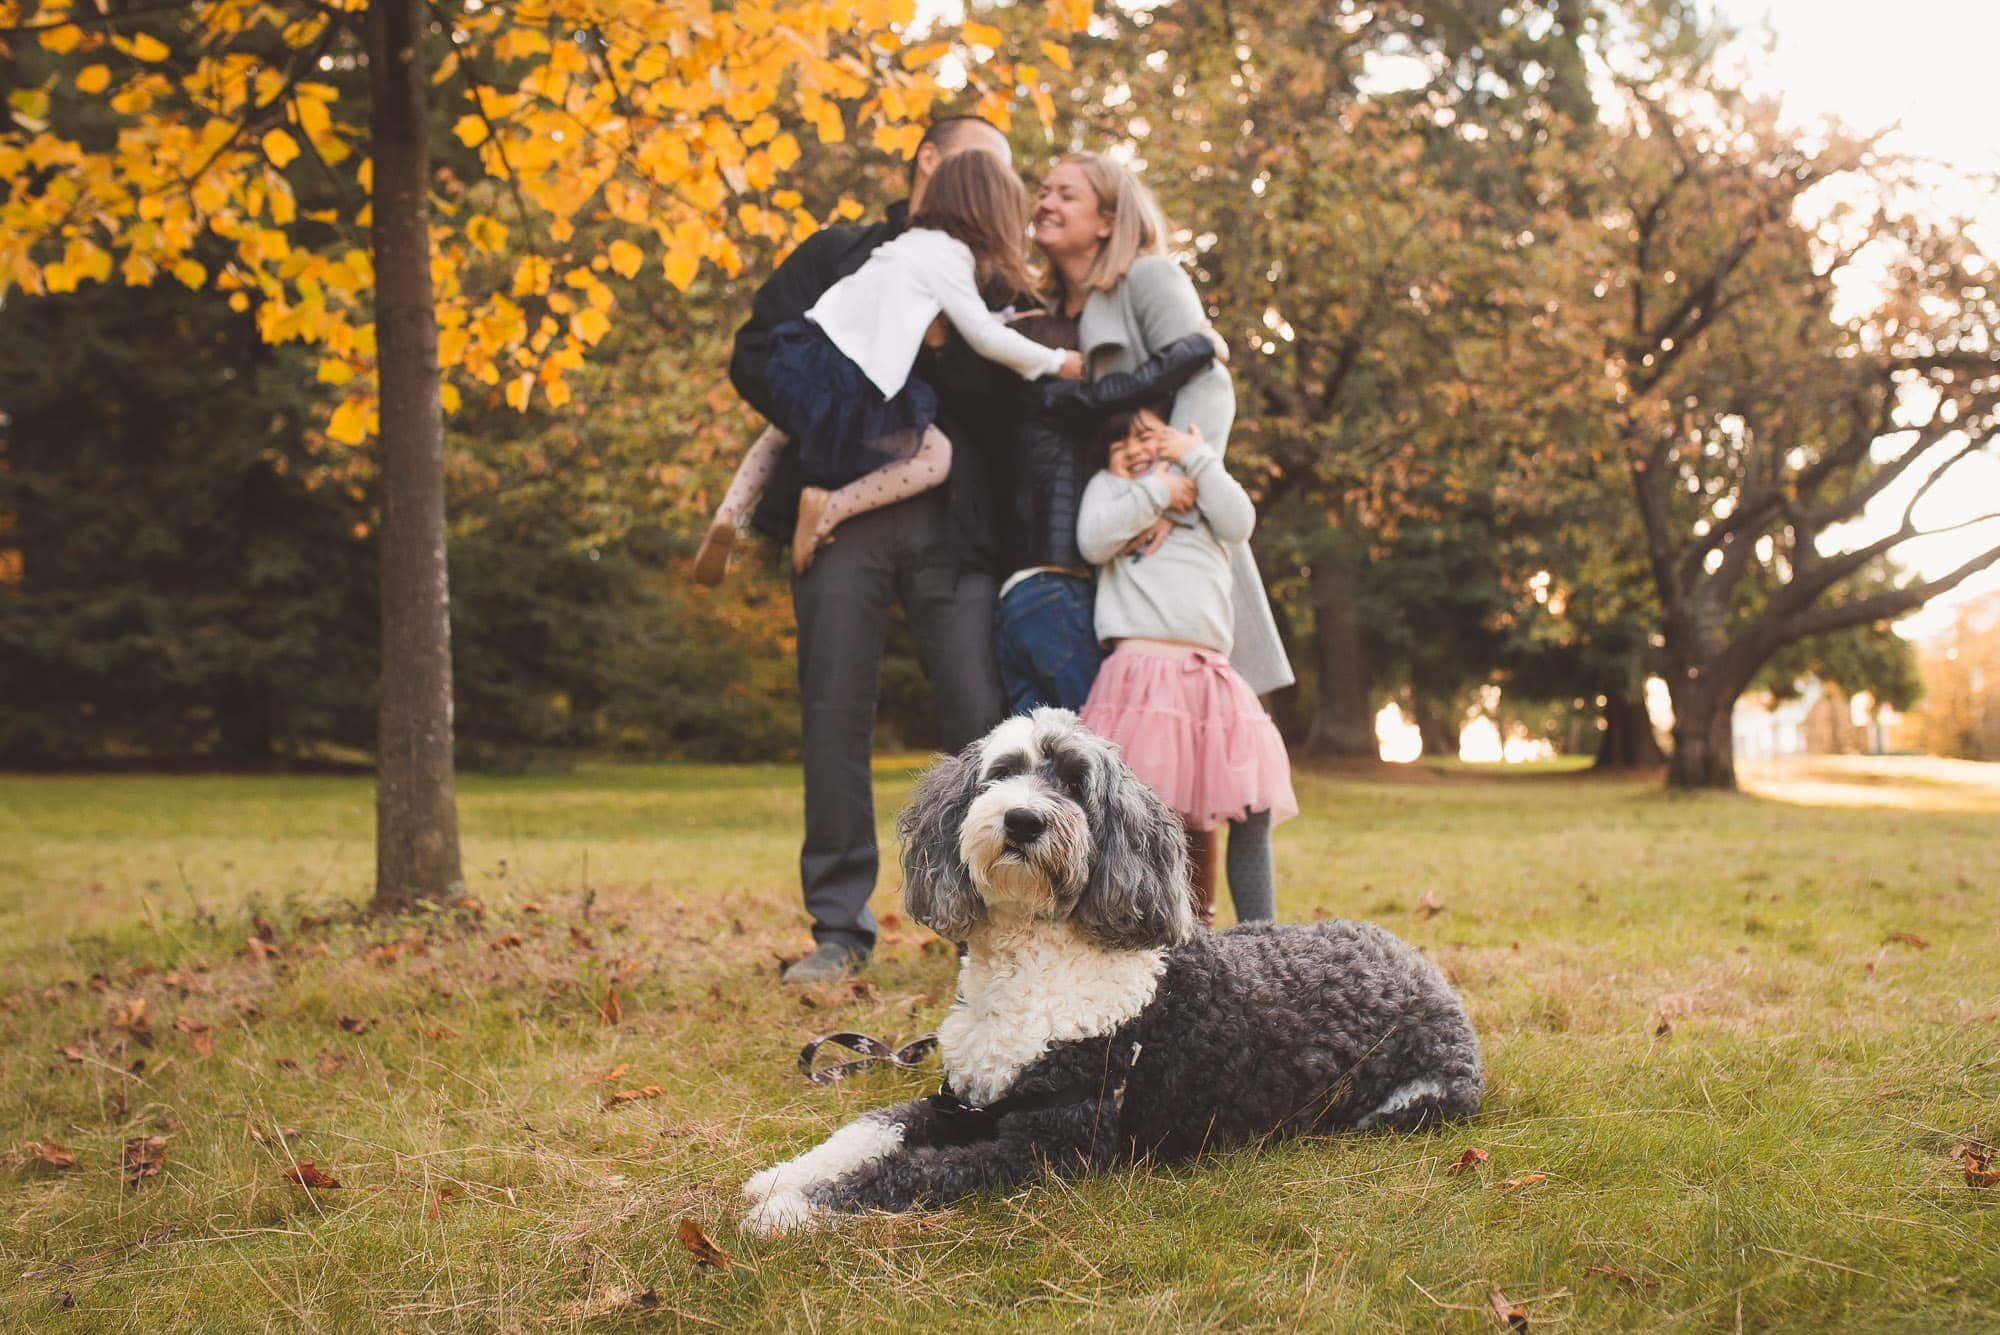 Vancouver Family Photographer makes dog the focus of Queens Park photo session